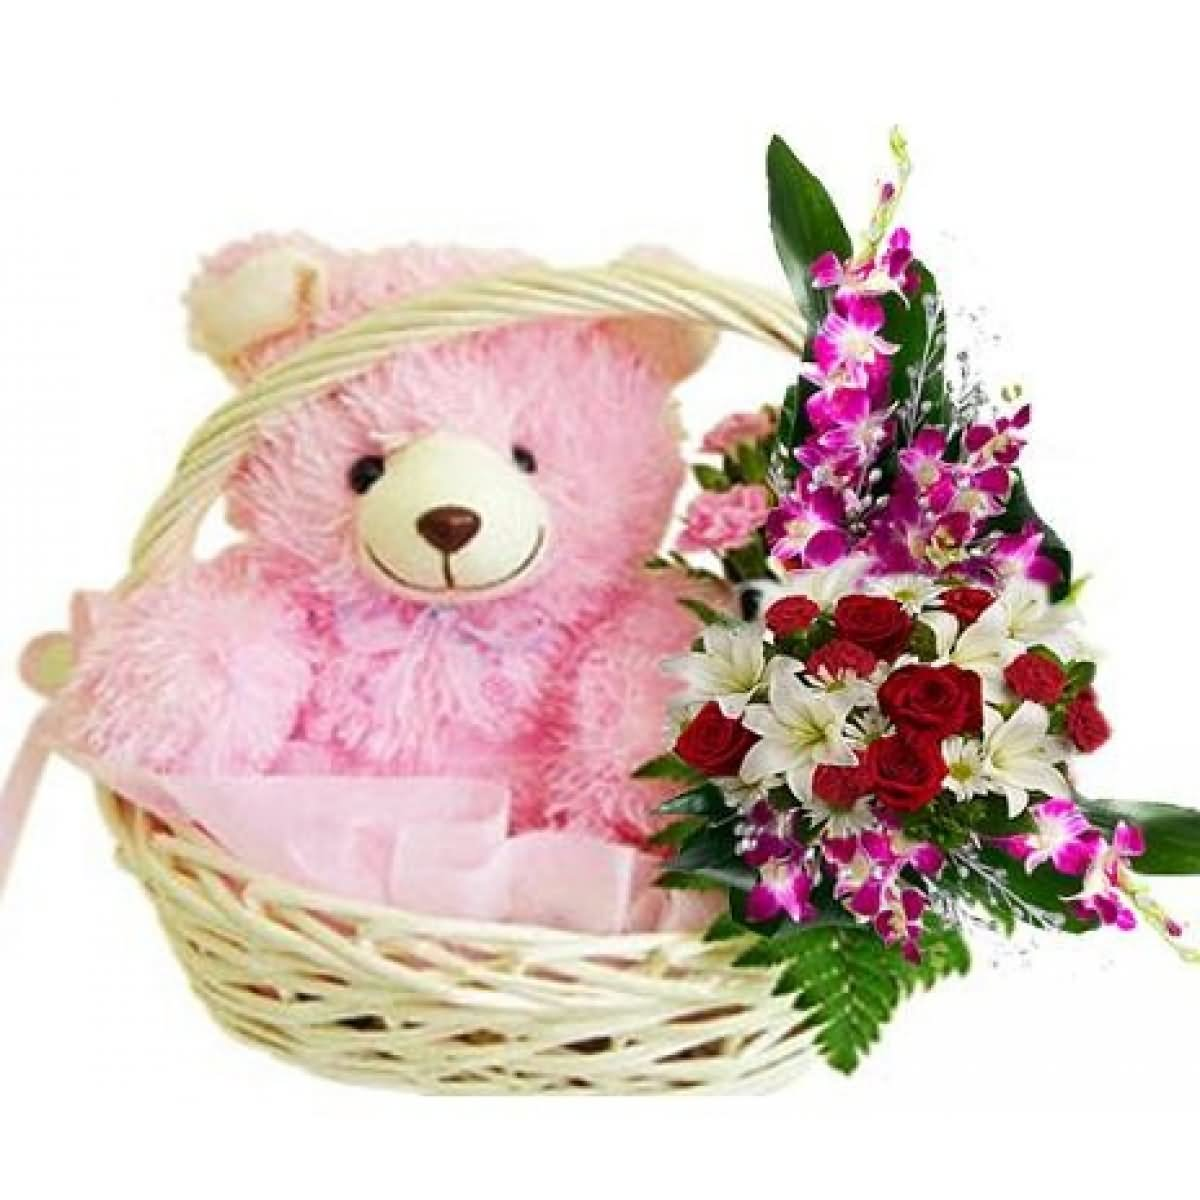 Teddy bear with pink roses - photo#47